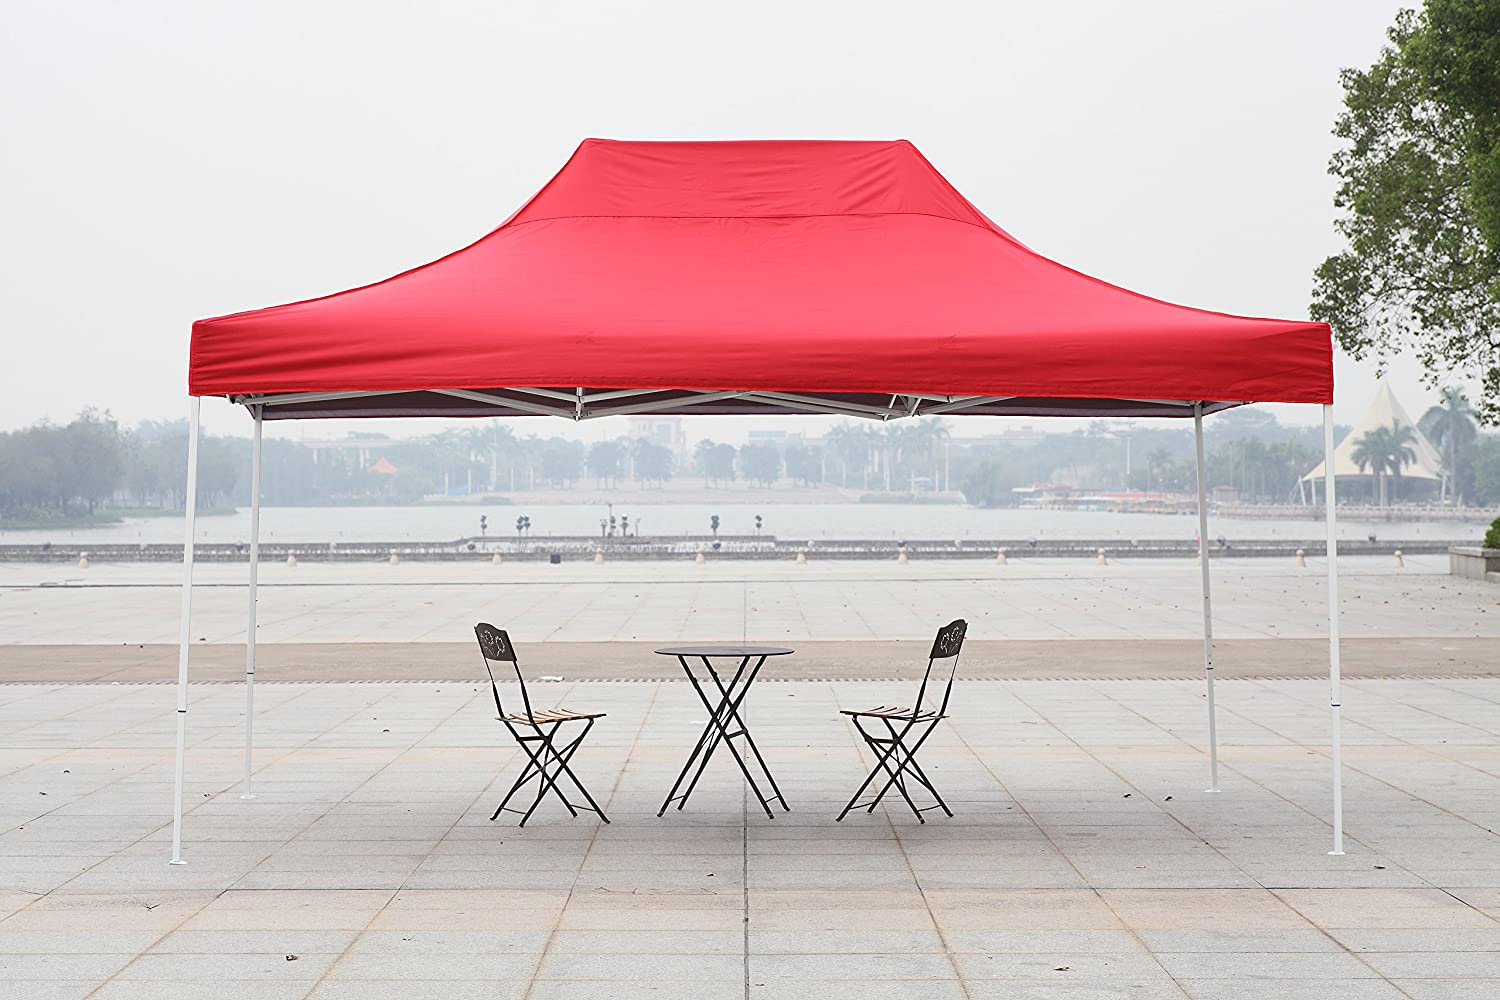 Amazon.com American Phoenix 10x10 10x15 10x20 [White Frame] Portable Event Canopy Tent Canopy Tent Party Tent Gazebo Canopy Commercial Fair Shelter Car ... & Amazon.com: American Phoenix 10x10 10x15 10x20 [White Frame ...